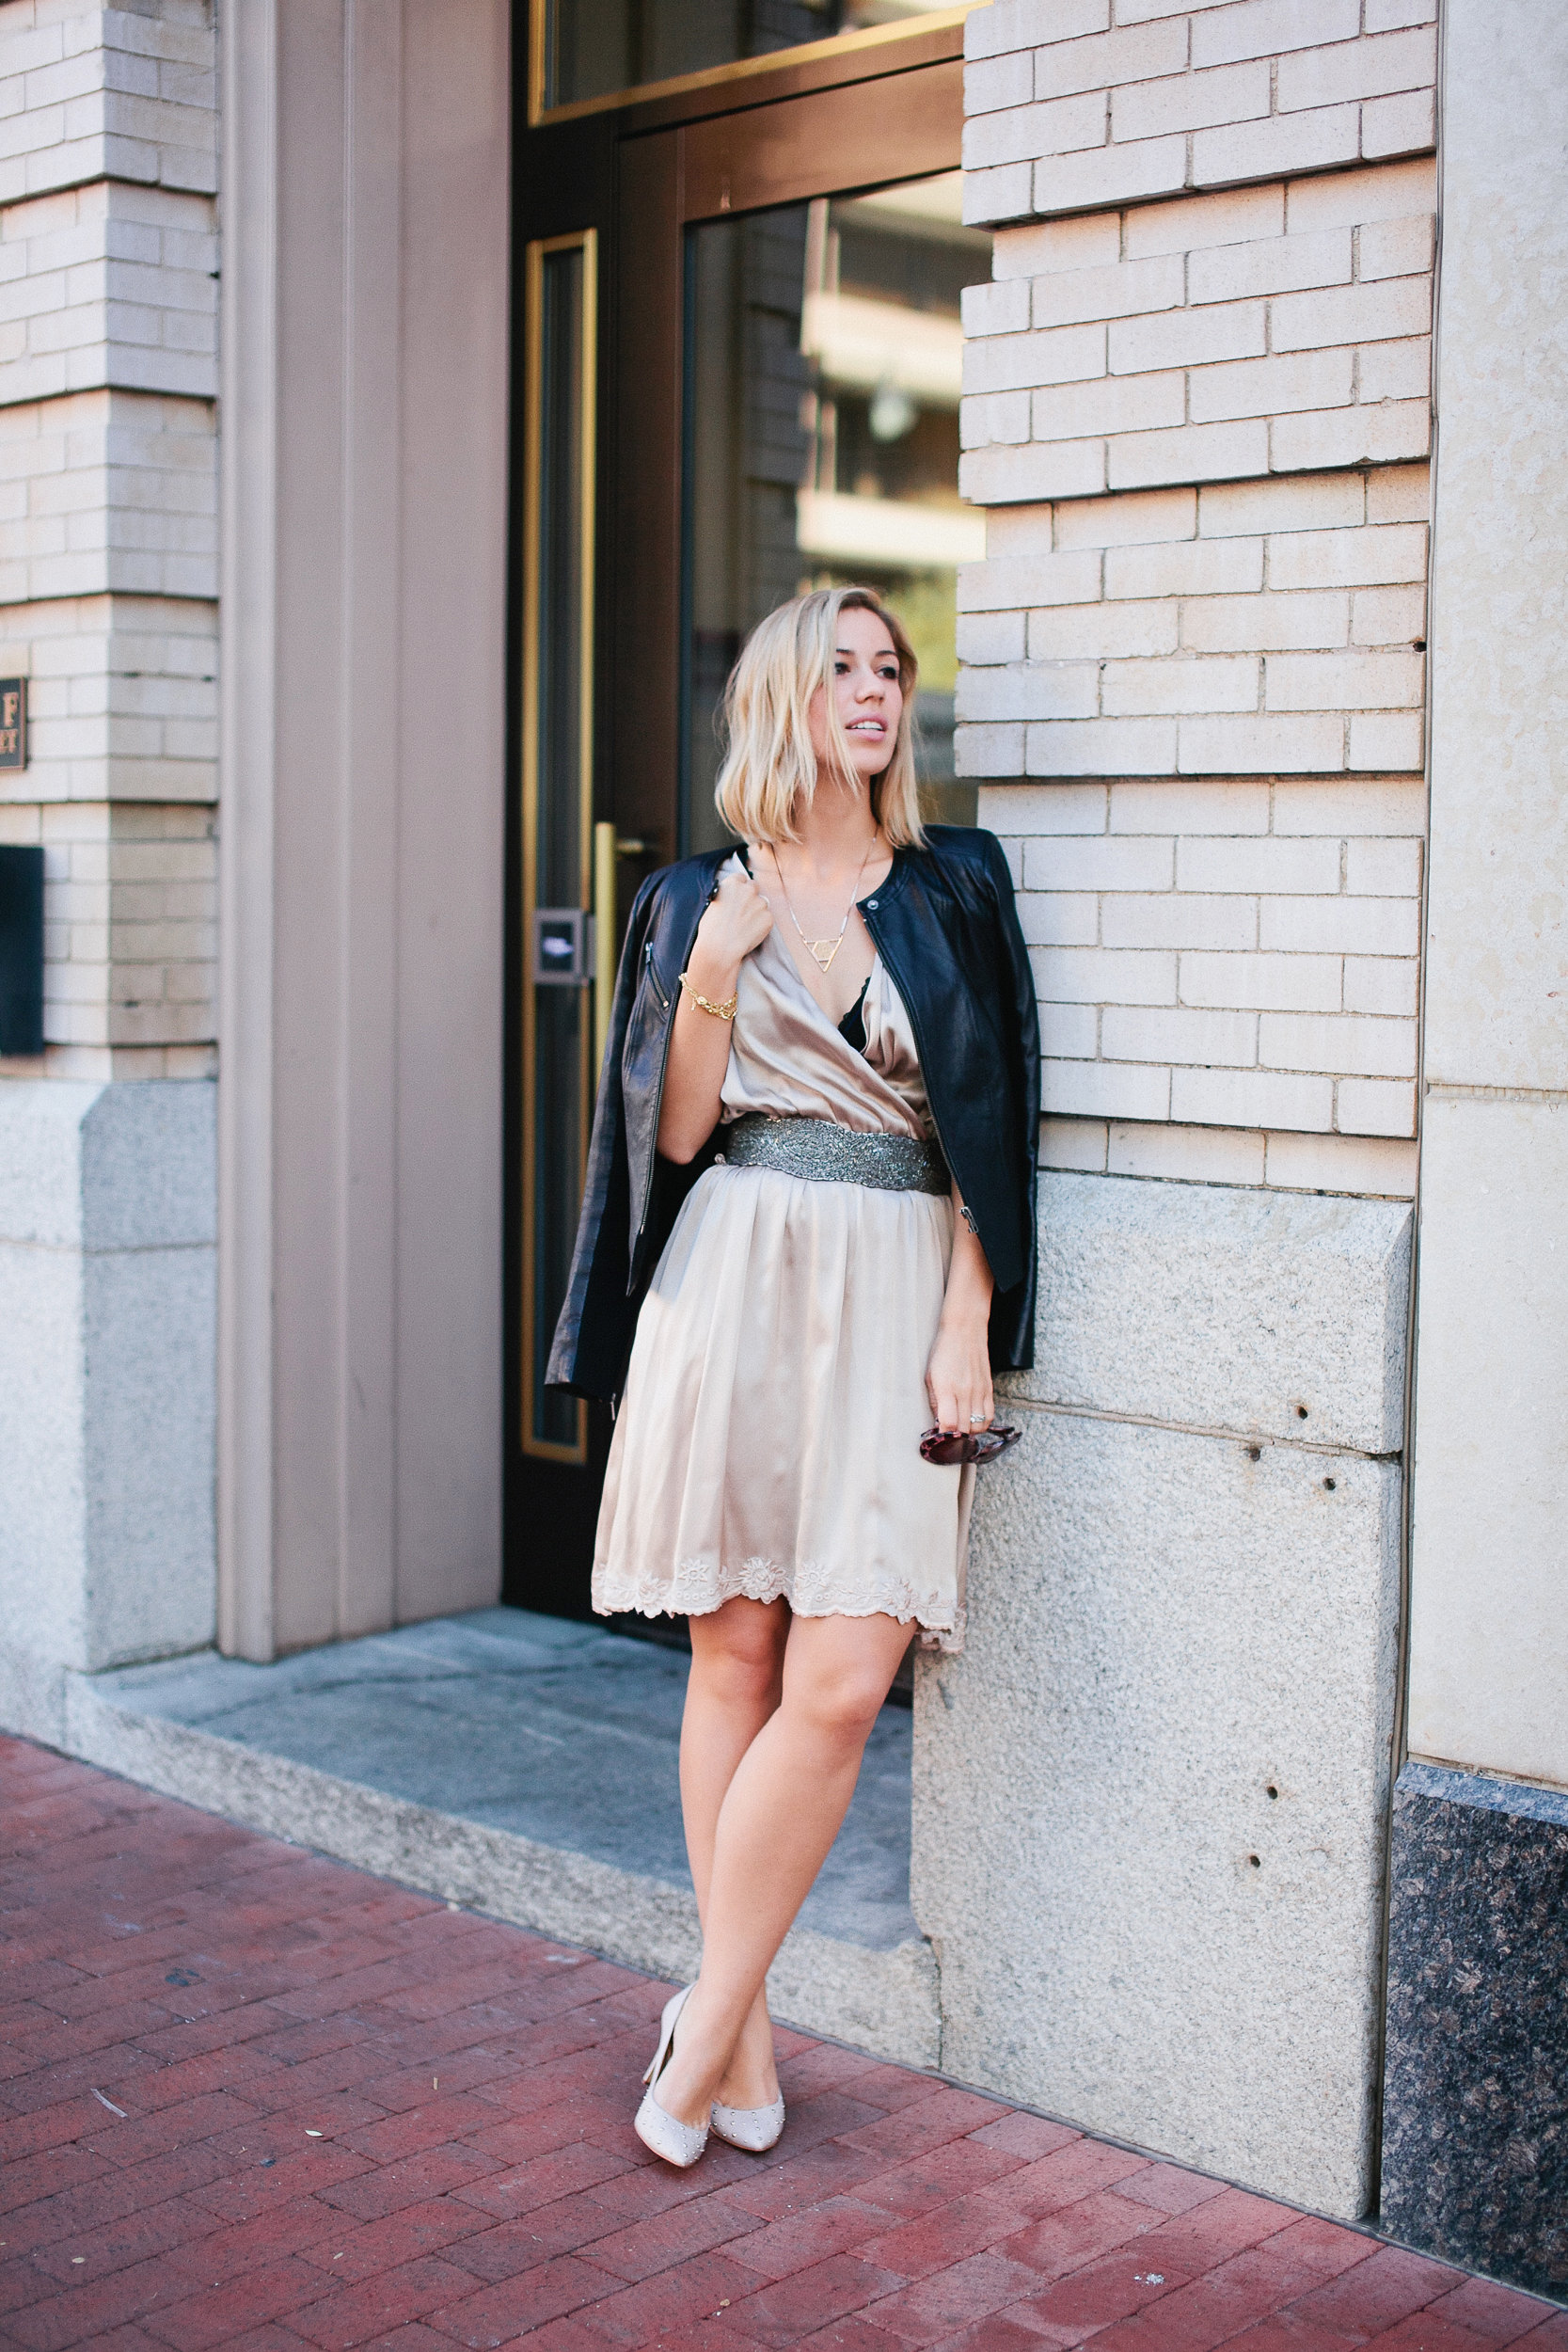 Slip dress + leather jacket + studded pumps  (see full outfit post here!)